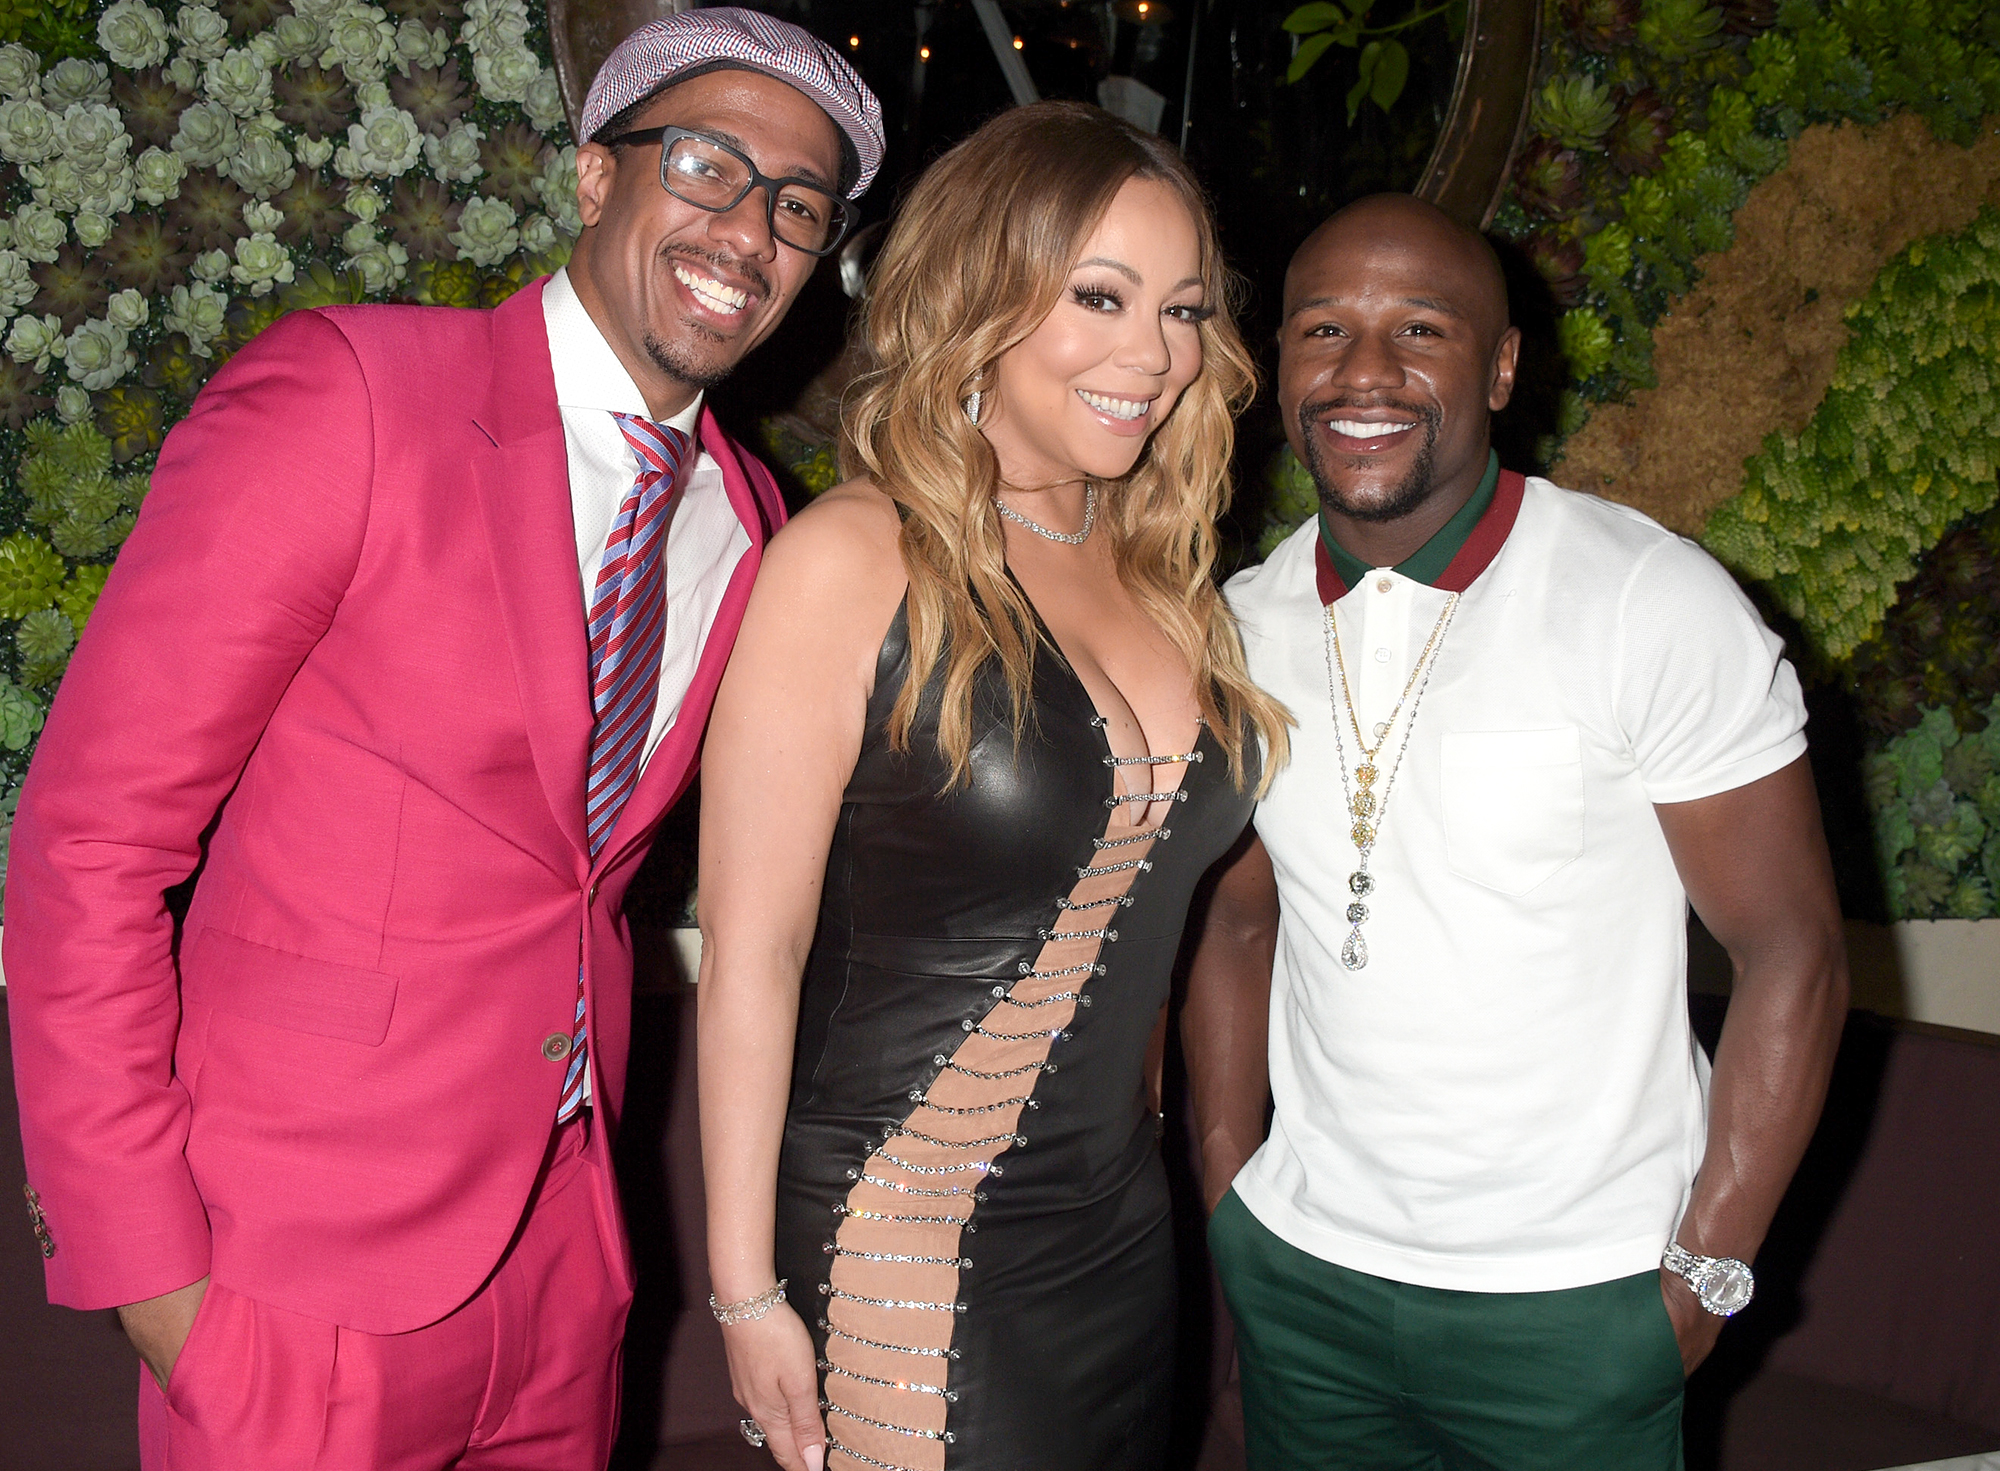 MC Records Launch Party at CATCH LA - A Joint Venture With Epic Records